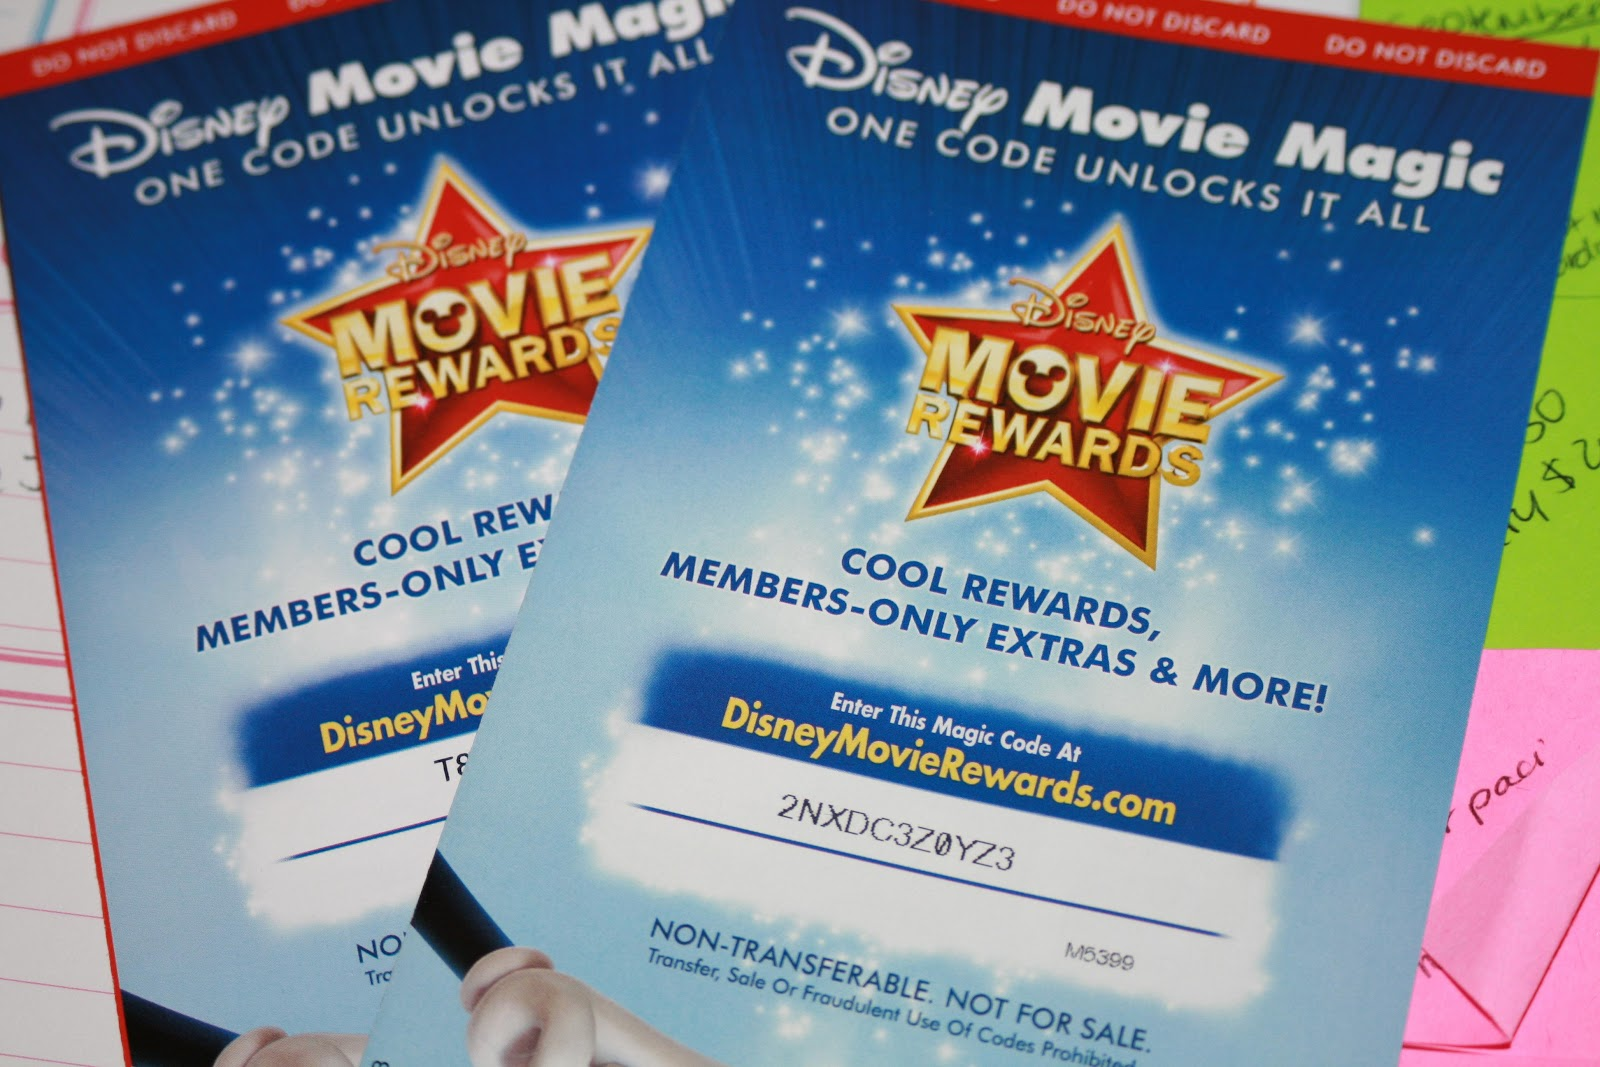 Download Your Favorite Disney Movies. Start Your Collection Today!